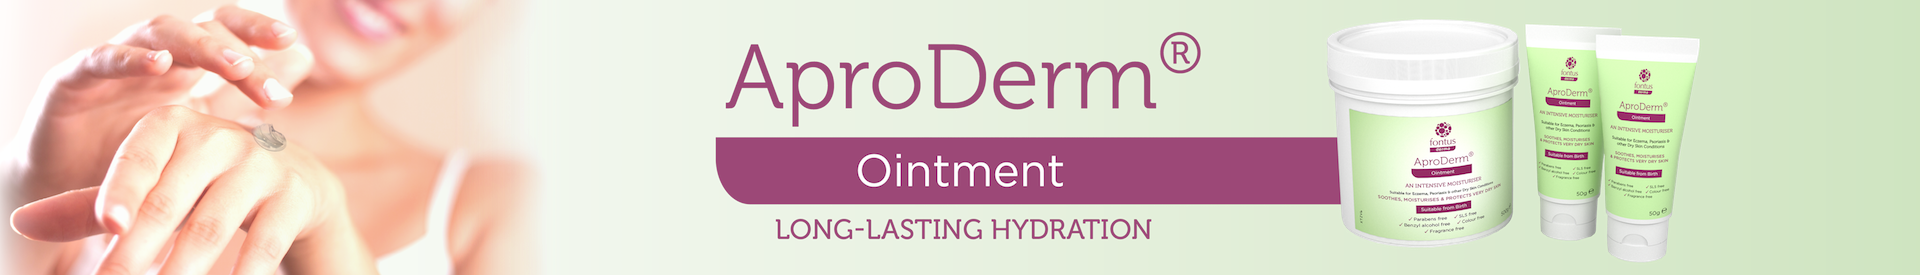 hcp-ointment-banner